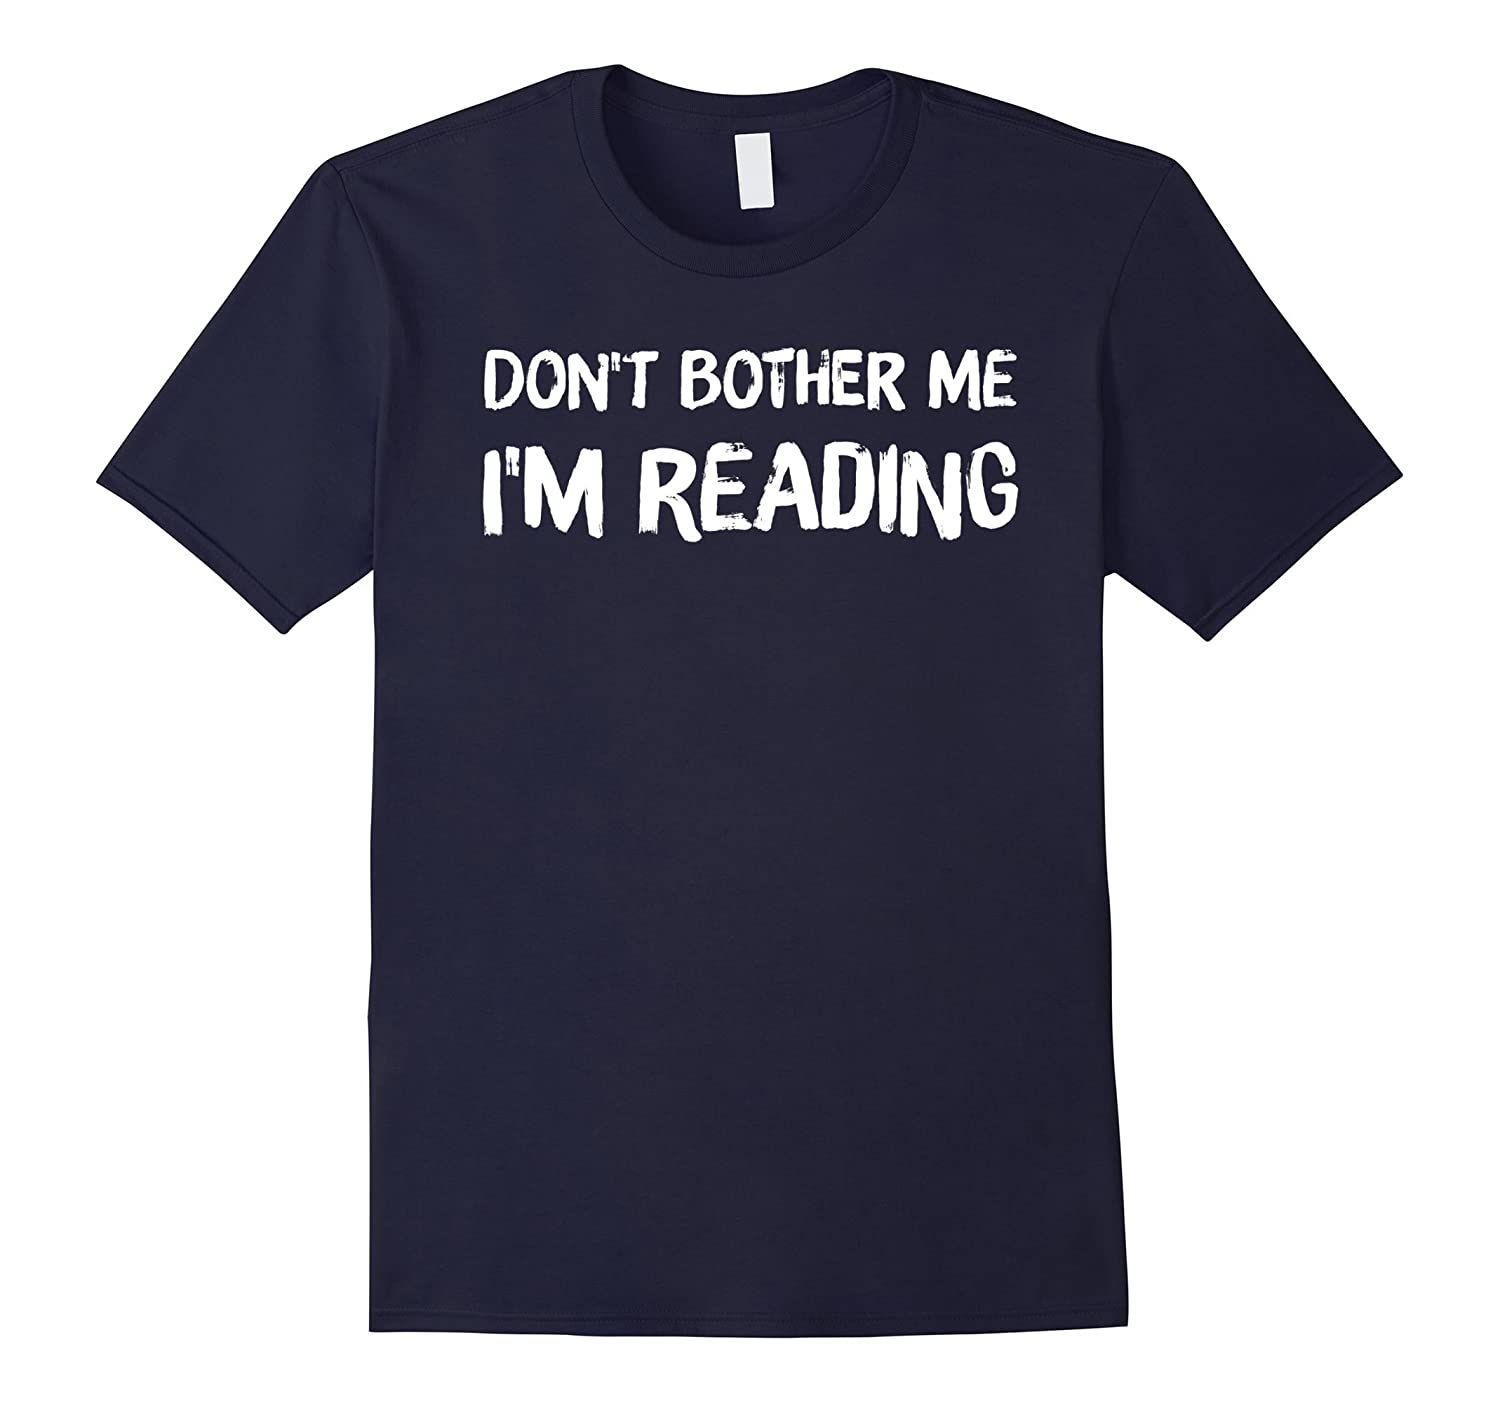 Book Humor Shirt   Don't Bother Me I'm Reading Shirt-CL